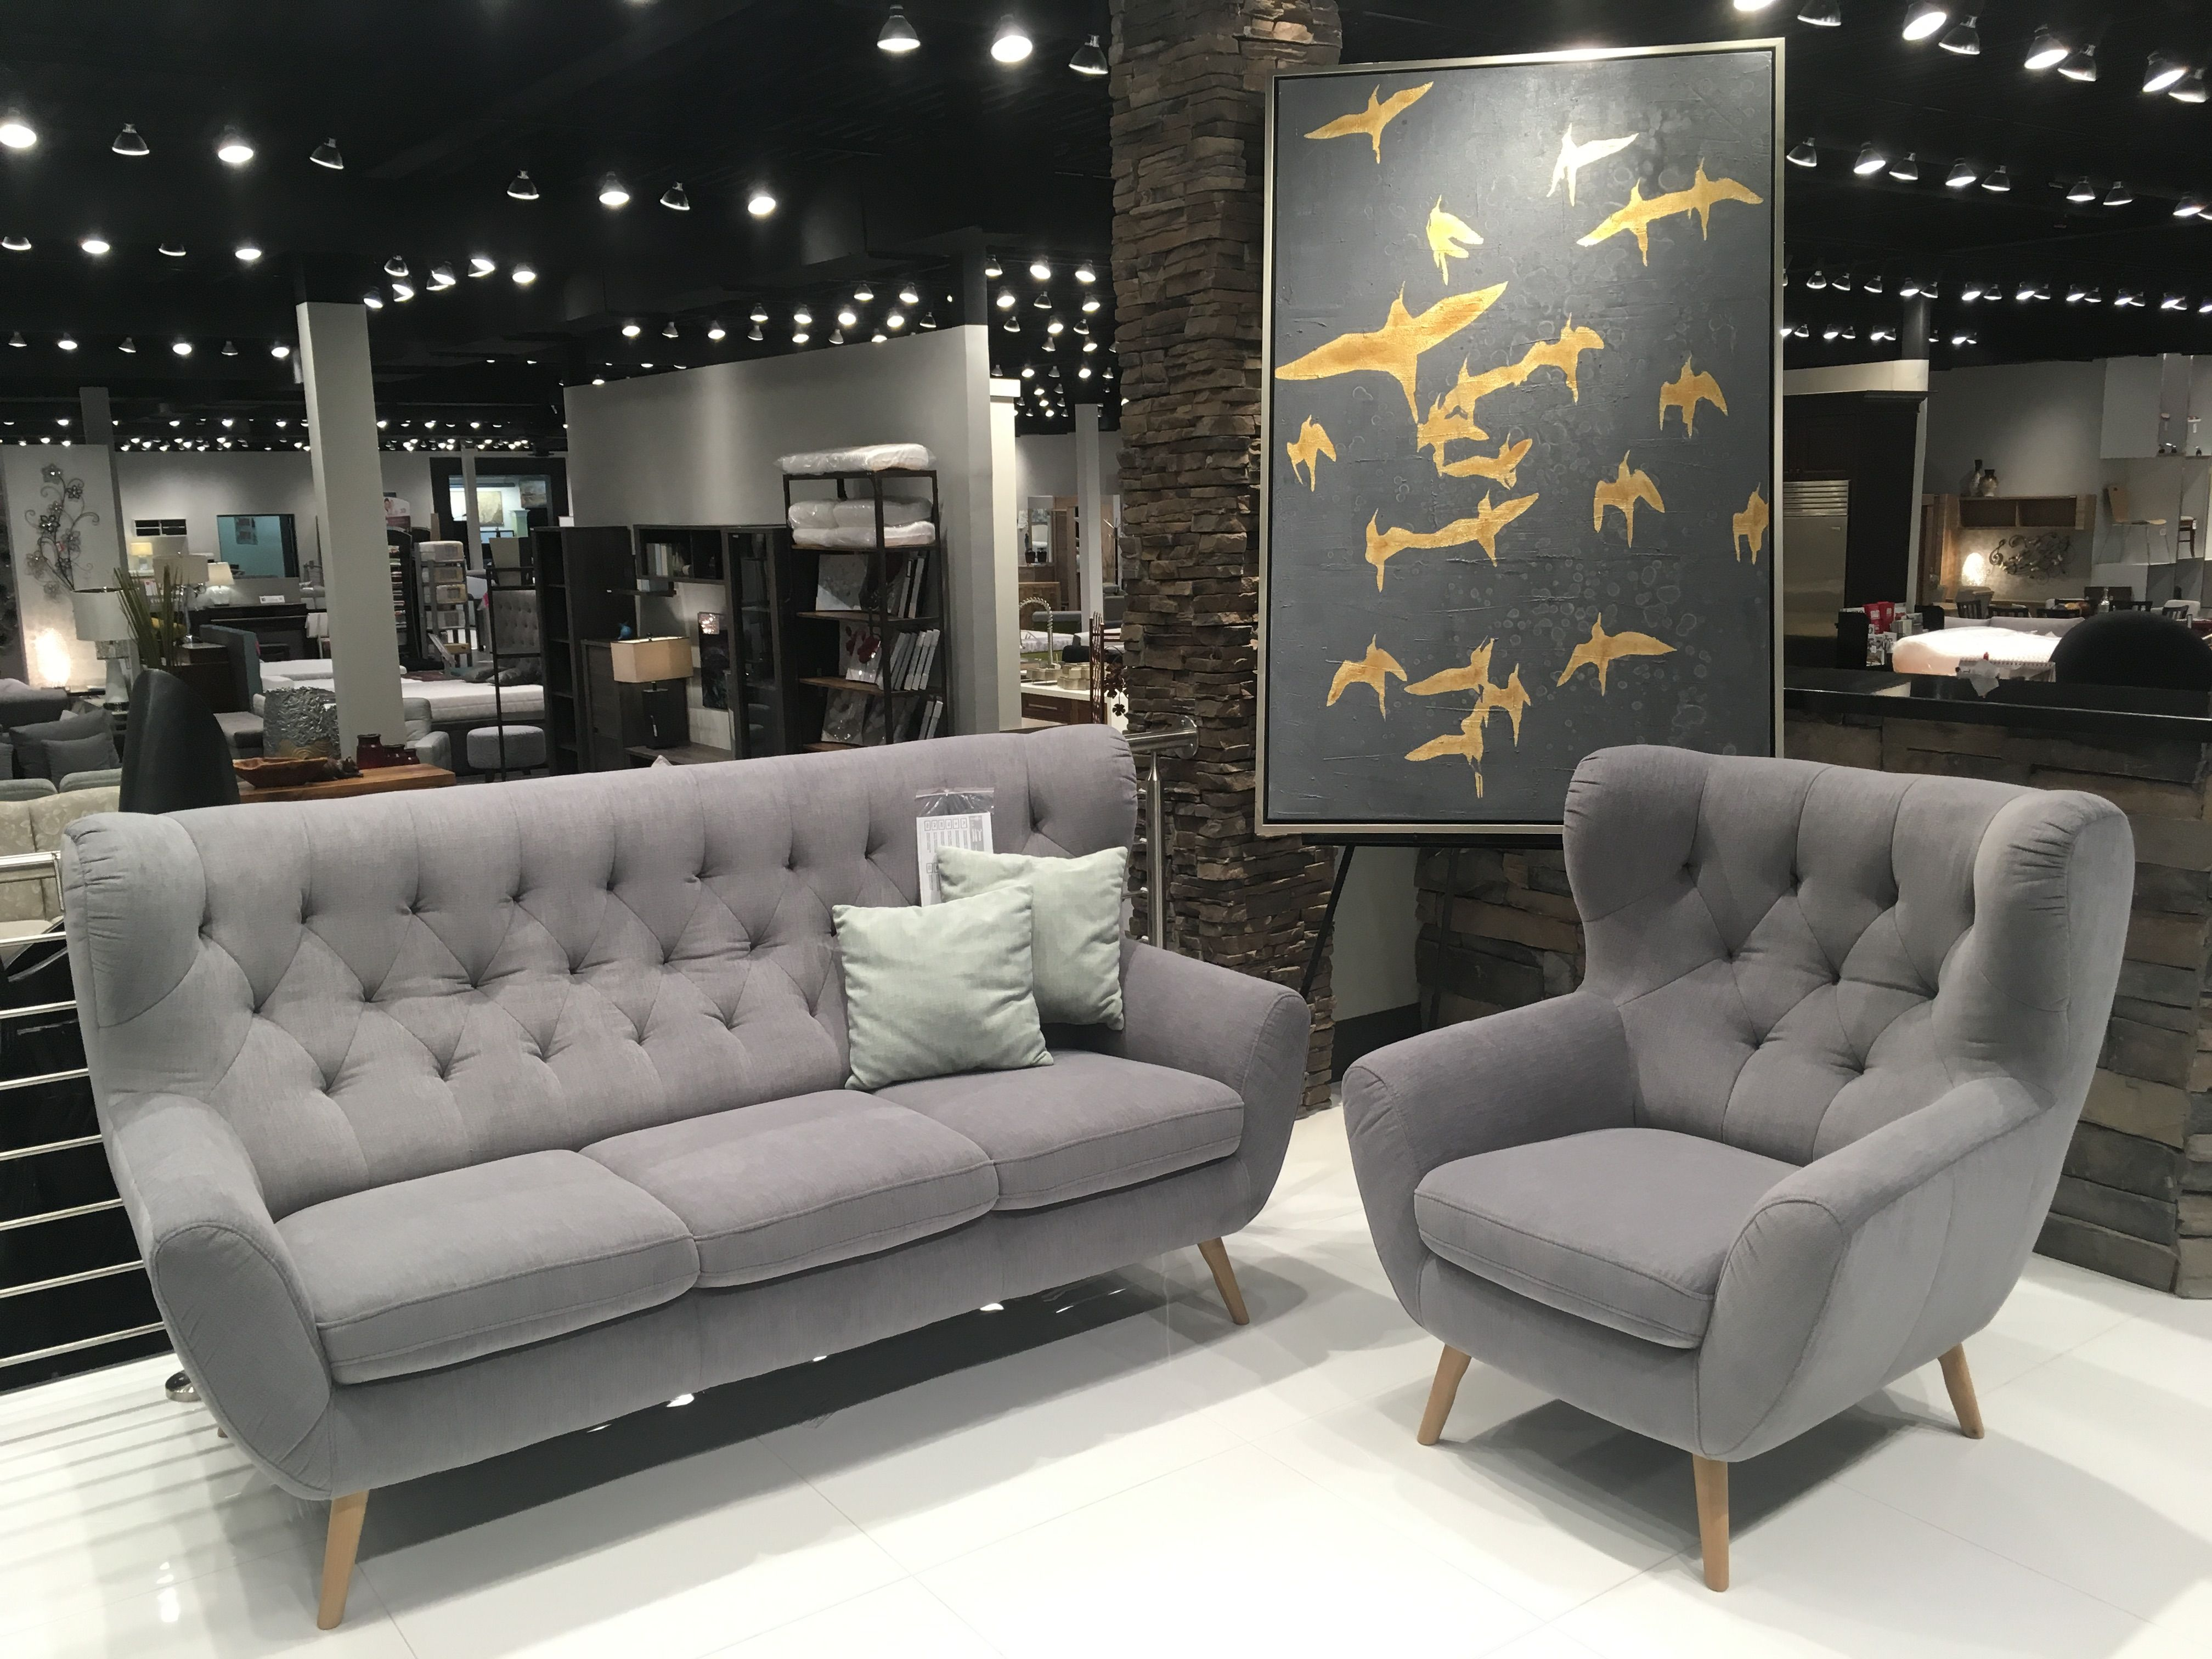 Looking For A Unique And High Quality Sofa? Grey, Pink, White, Blue? We Have Them All! Pop Up To Our Store Or Our Website An… | Sofa Bed Design, Sofa Decor, Sofa